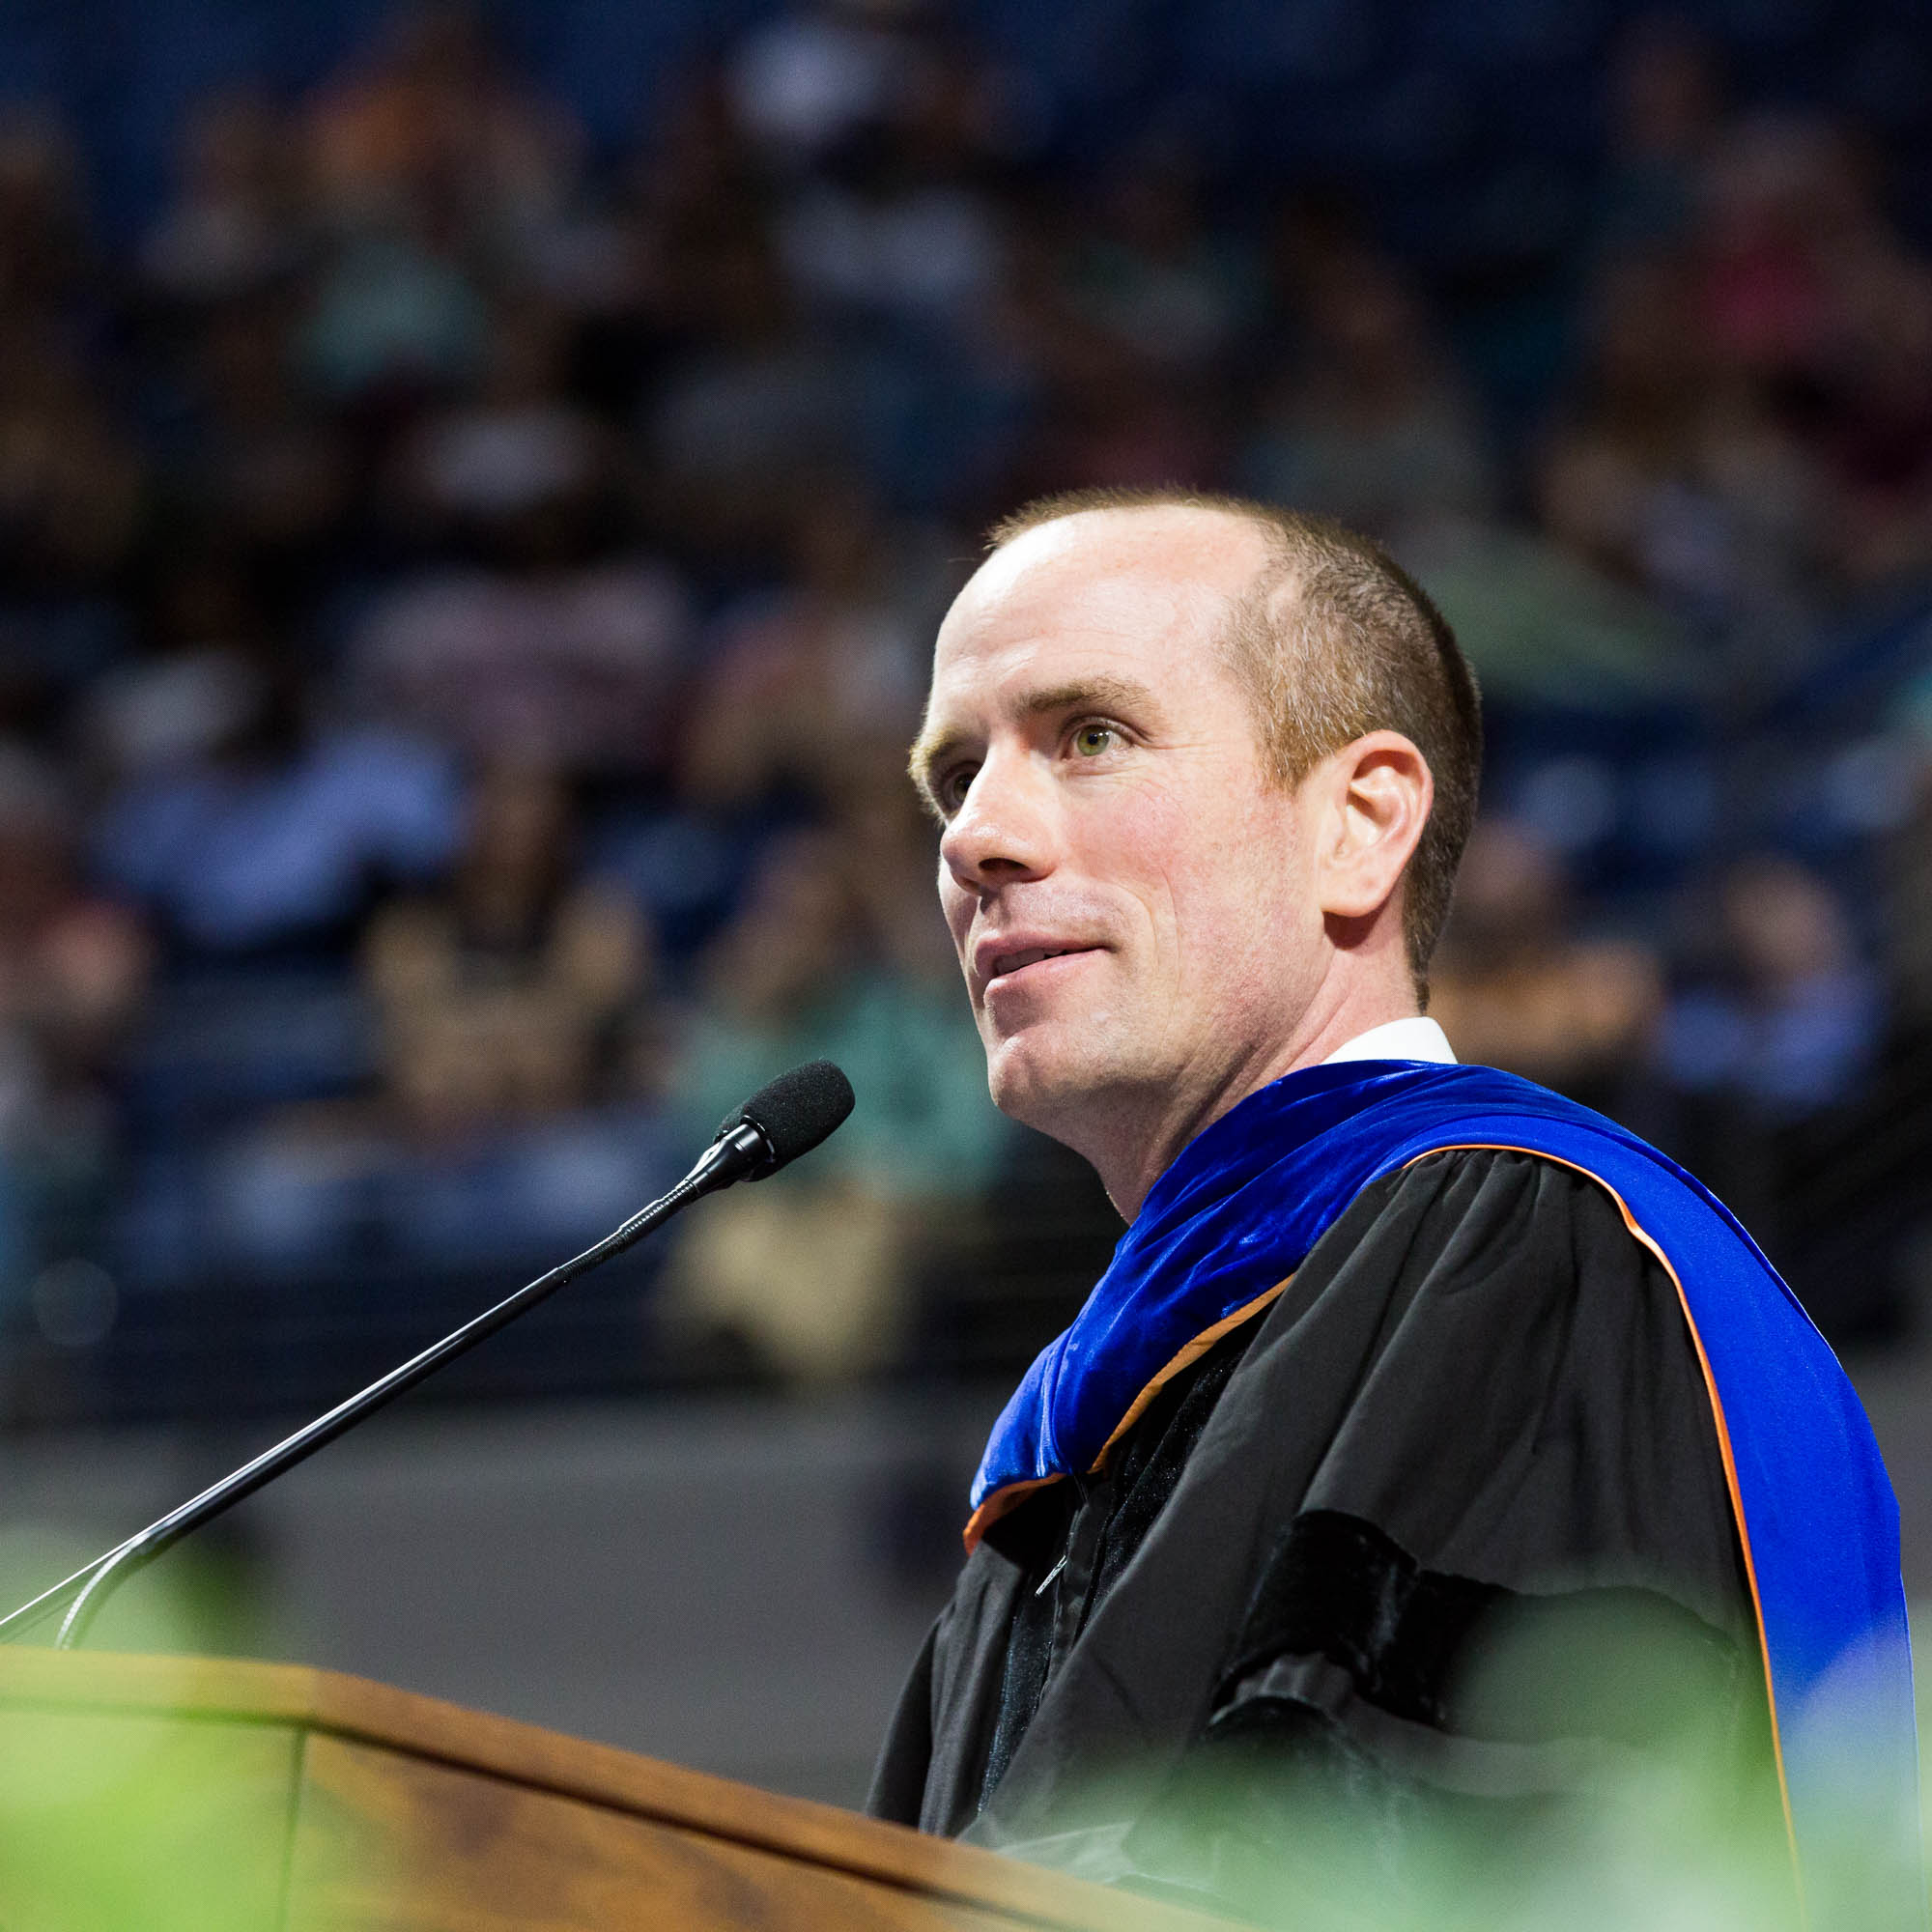 Gator Marching Band director speaks at doctoral commencement